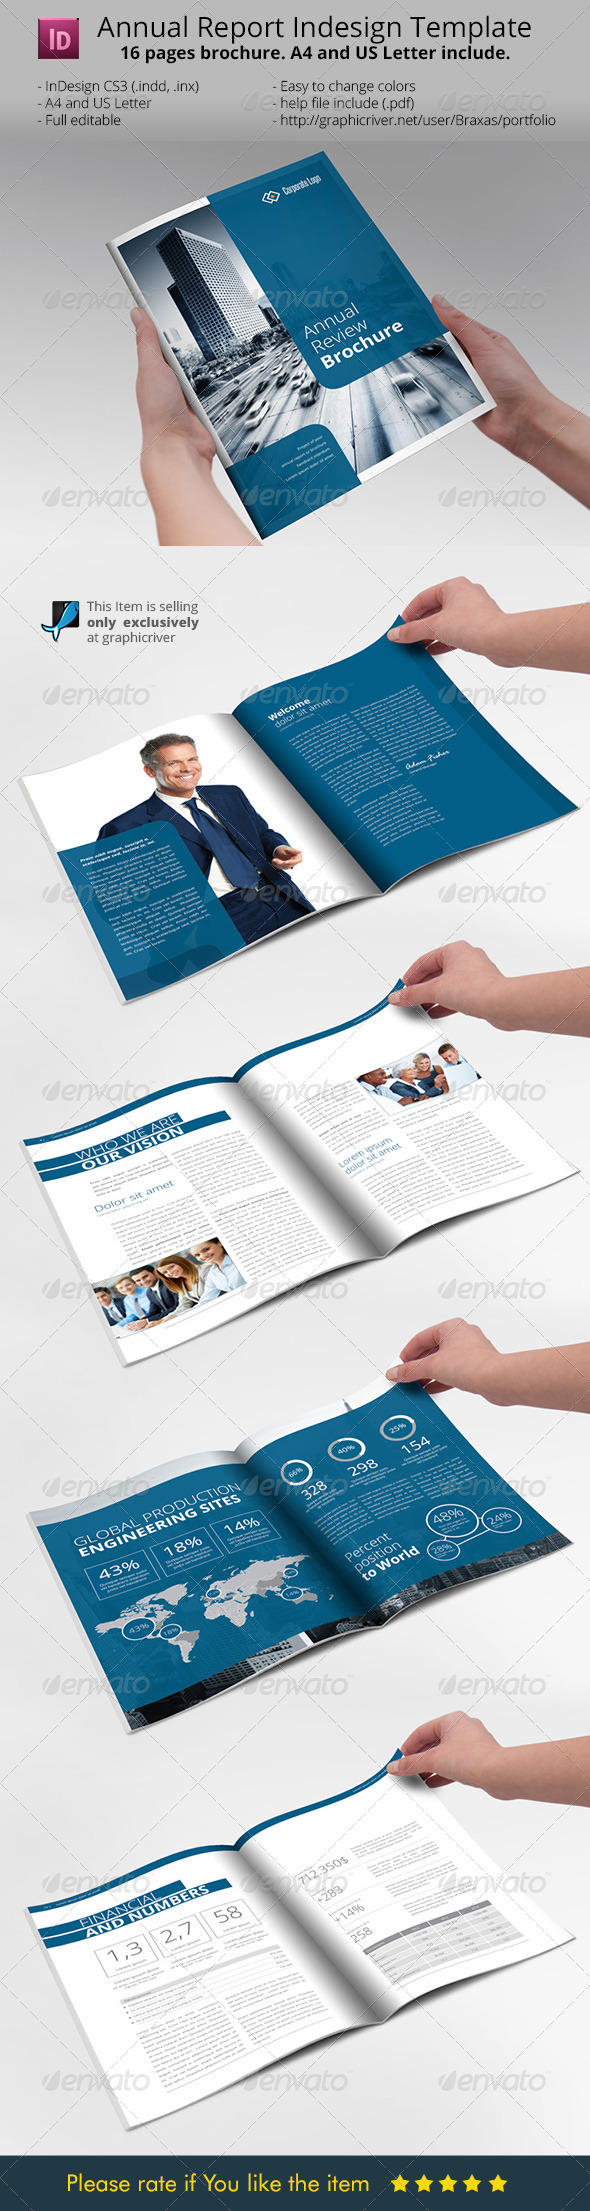 Annual Report Brochure Indesign Template - Informational Brochures